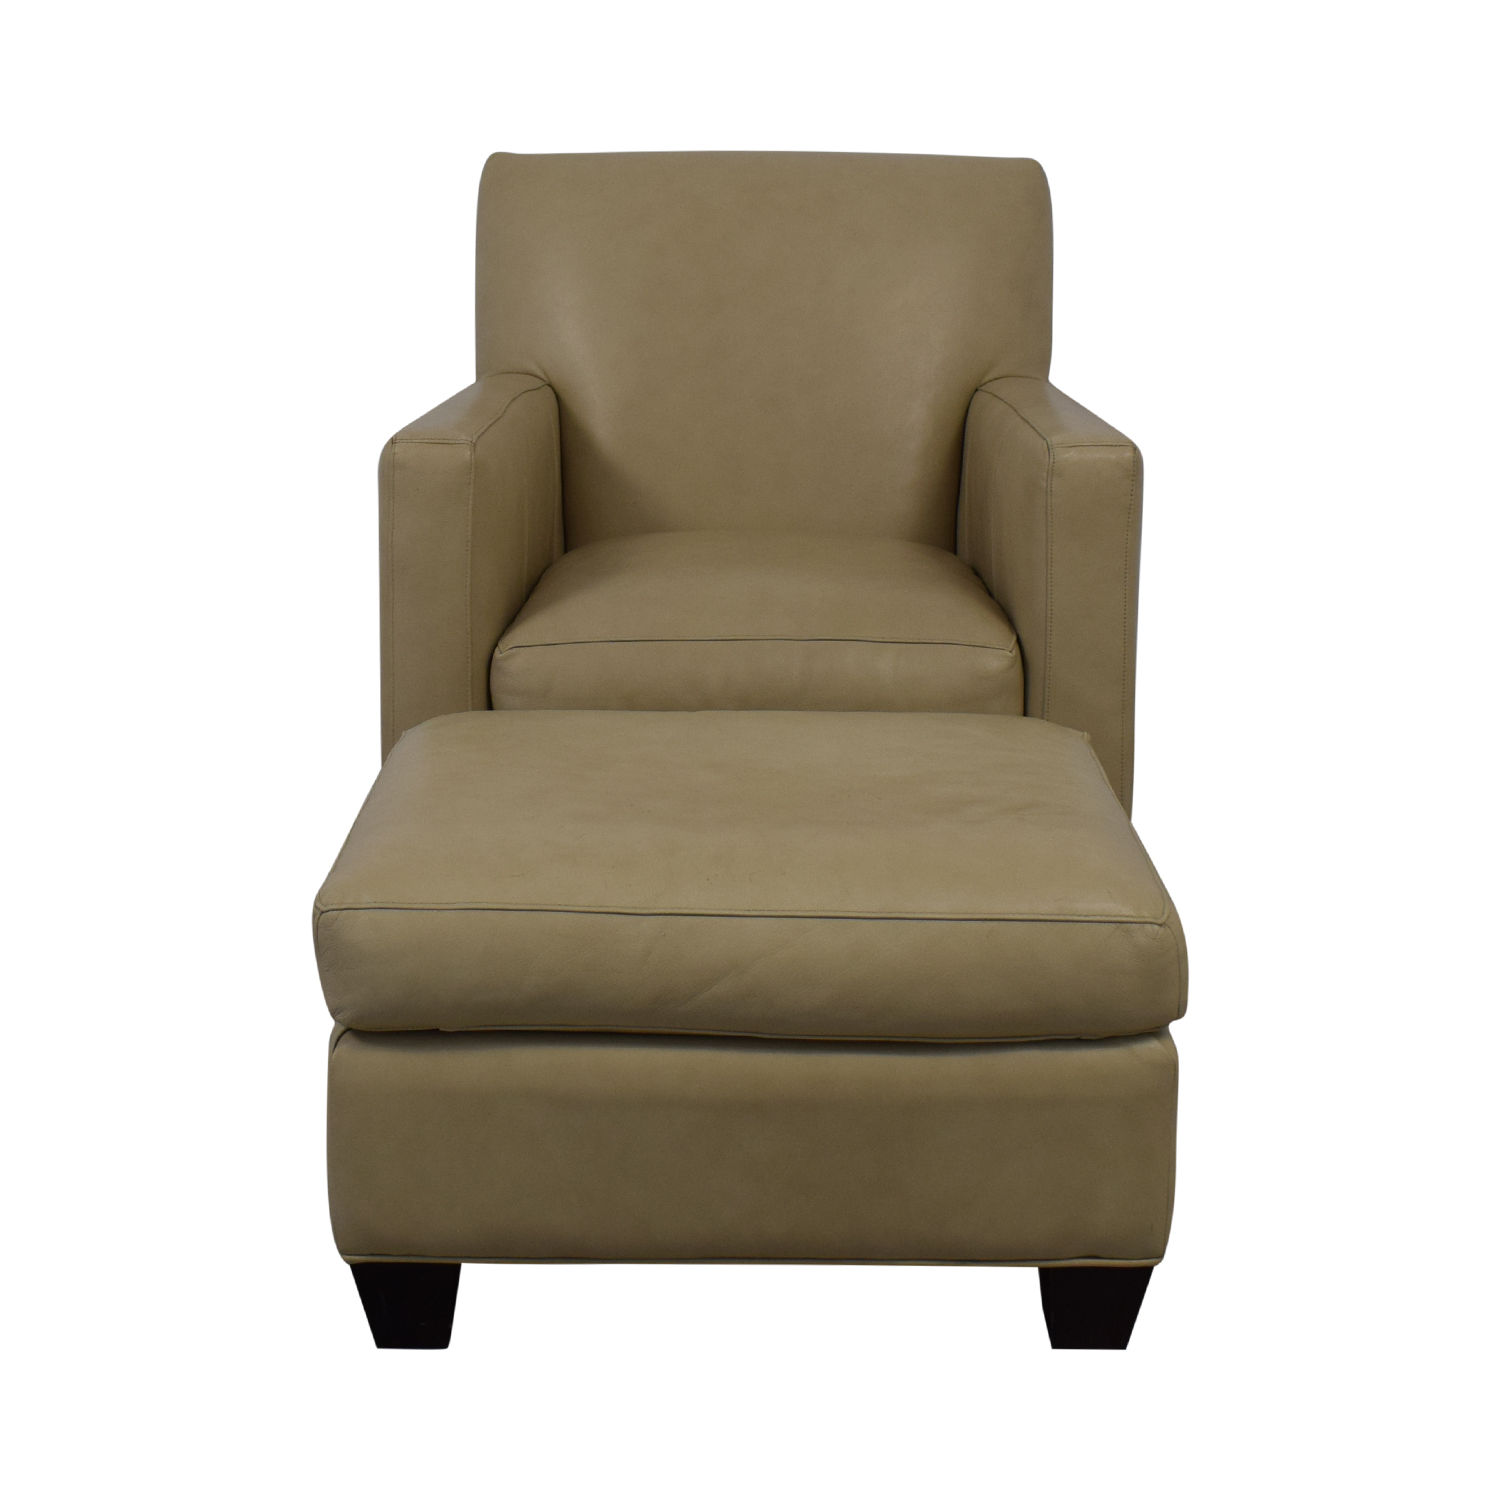 buy Crate & Barrel Accent Chair With Ottoman Crate & Barrel Chairs